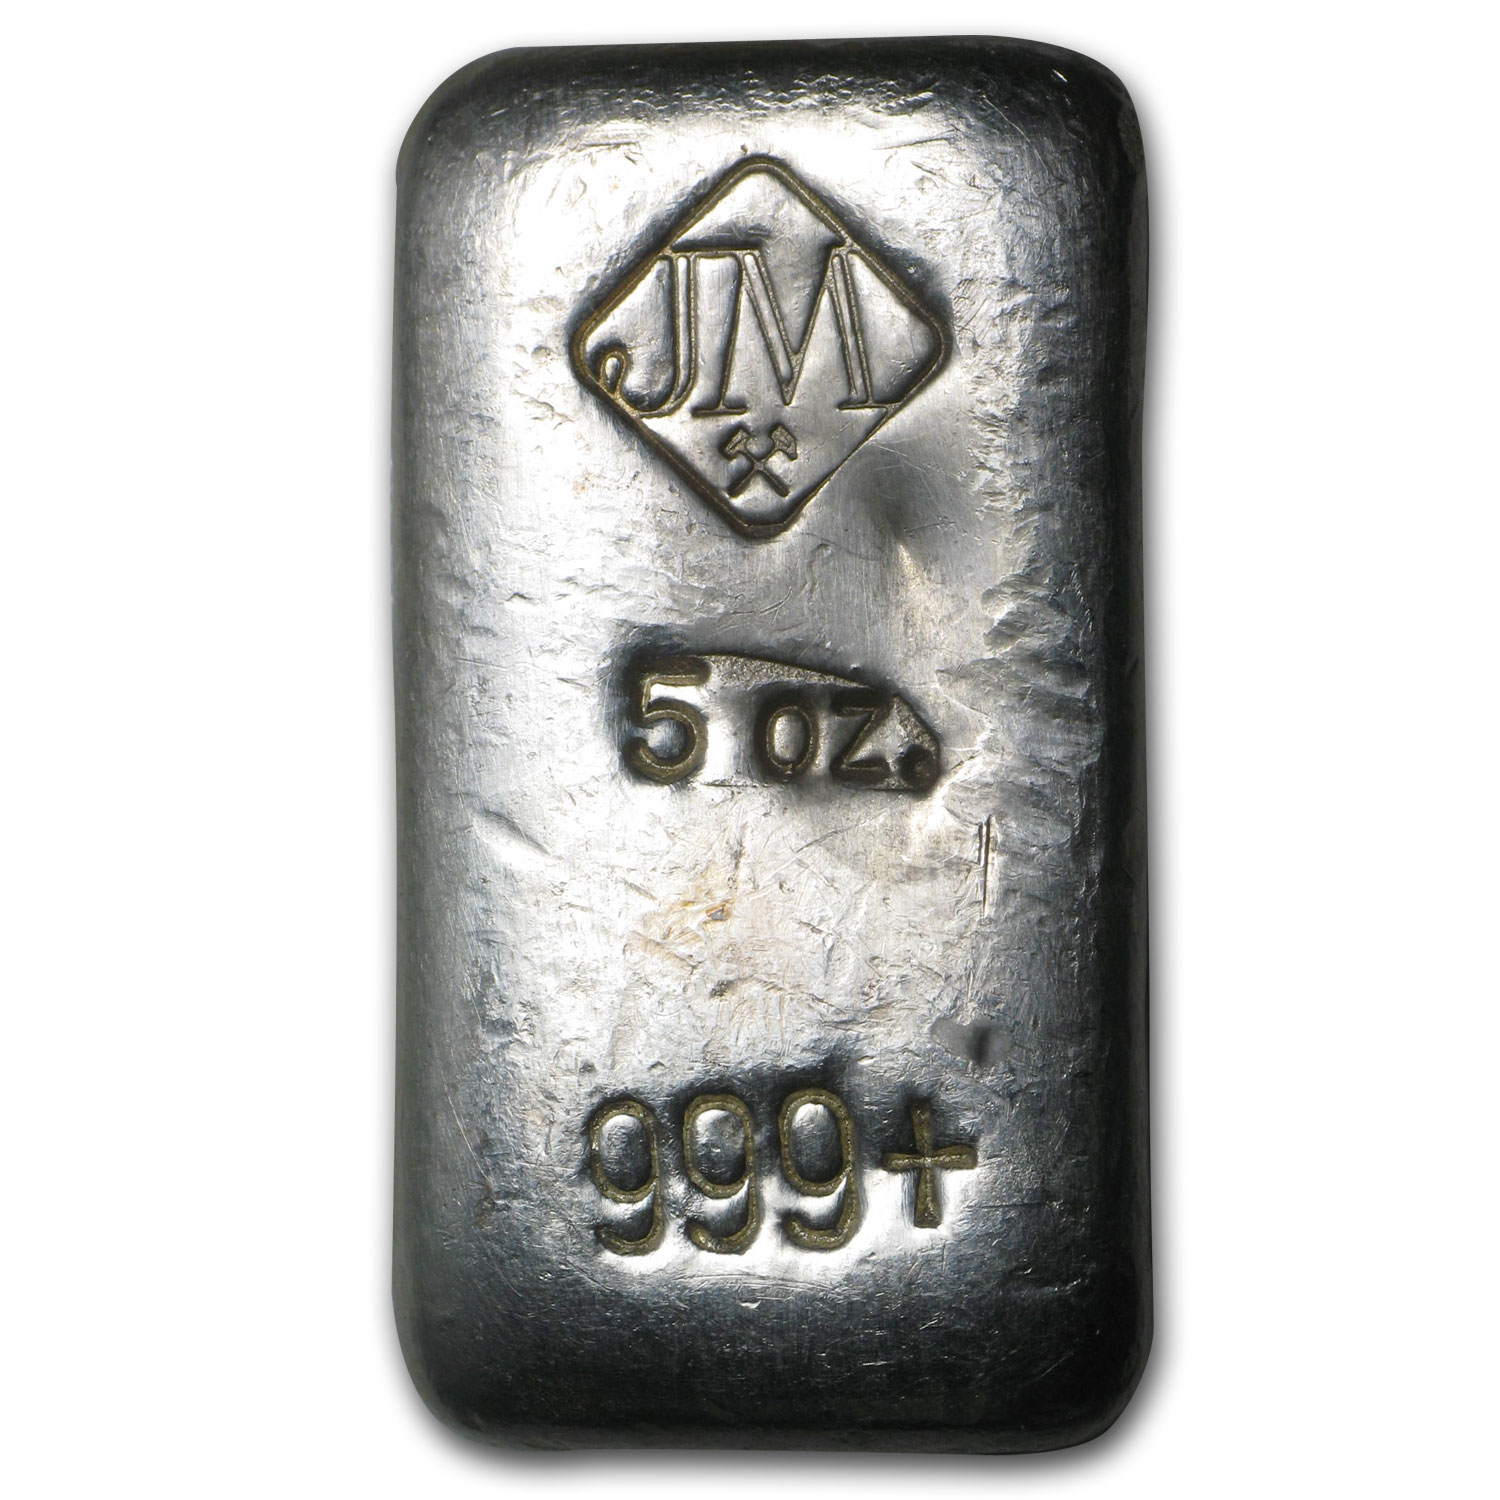 5 oz Silver Bars - Johnson Matthey (Poured/Pudgy)